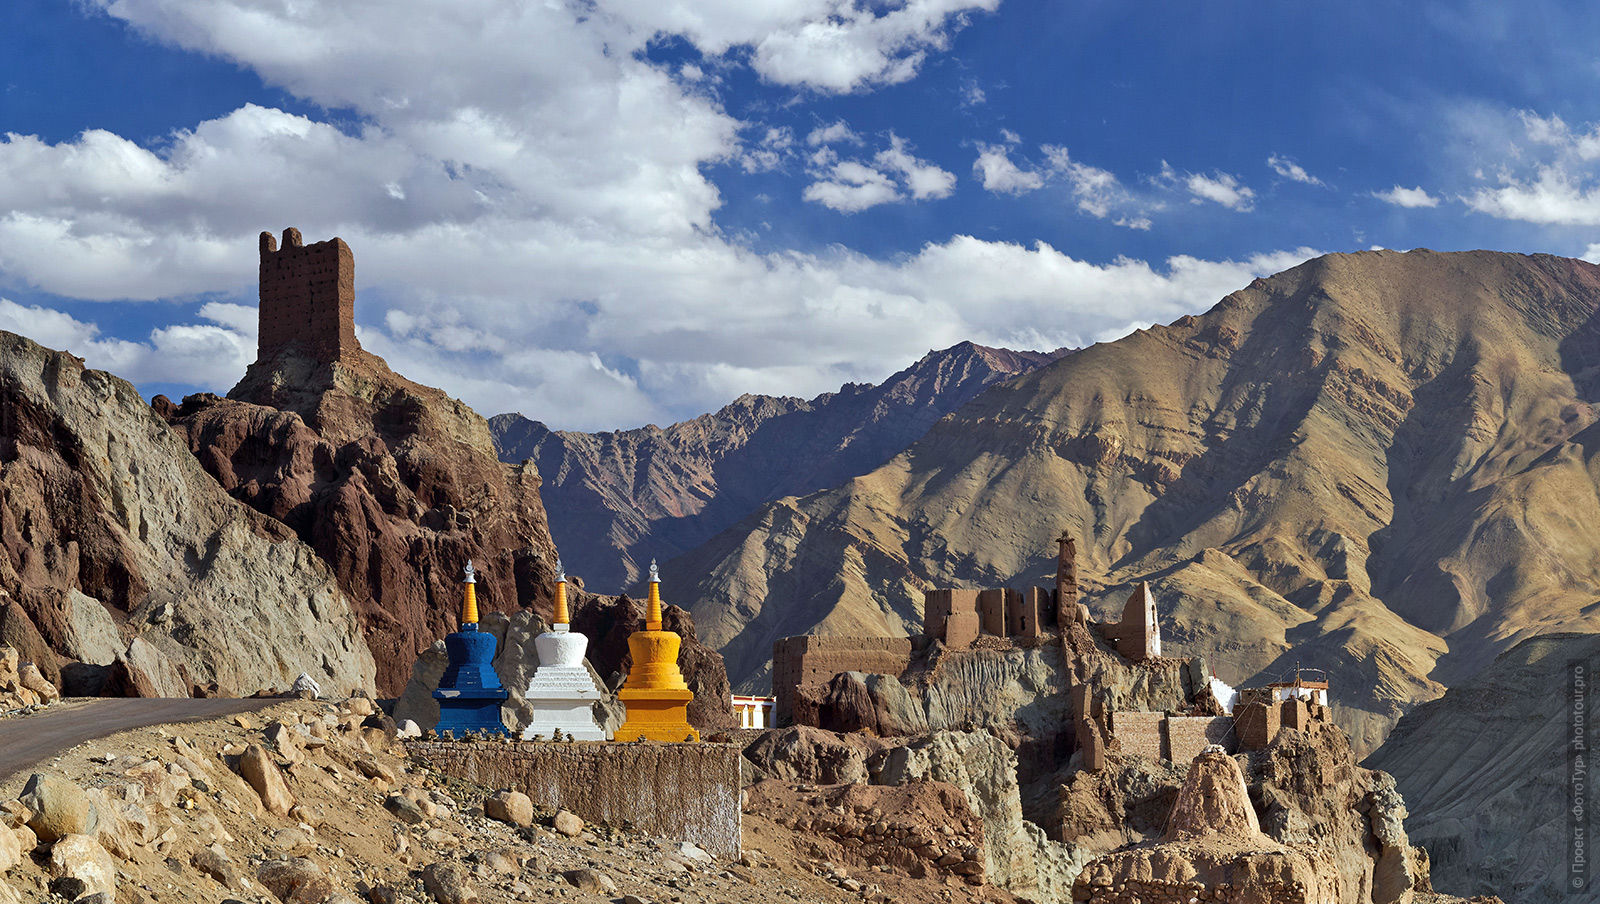 Stupas of the Basgo monastery. Expedition Tibet Lake-2: Pangong, Tso Moriri, Tso Kar, Tso Startsapak, Leh-Manali highway.